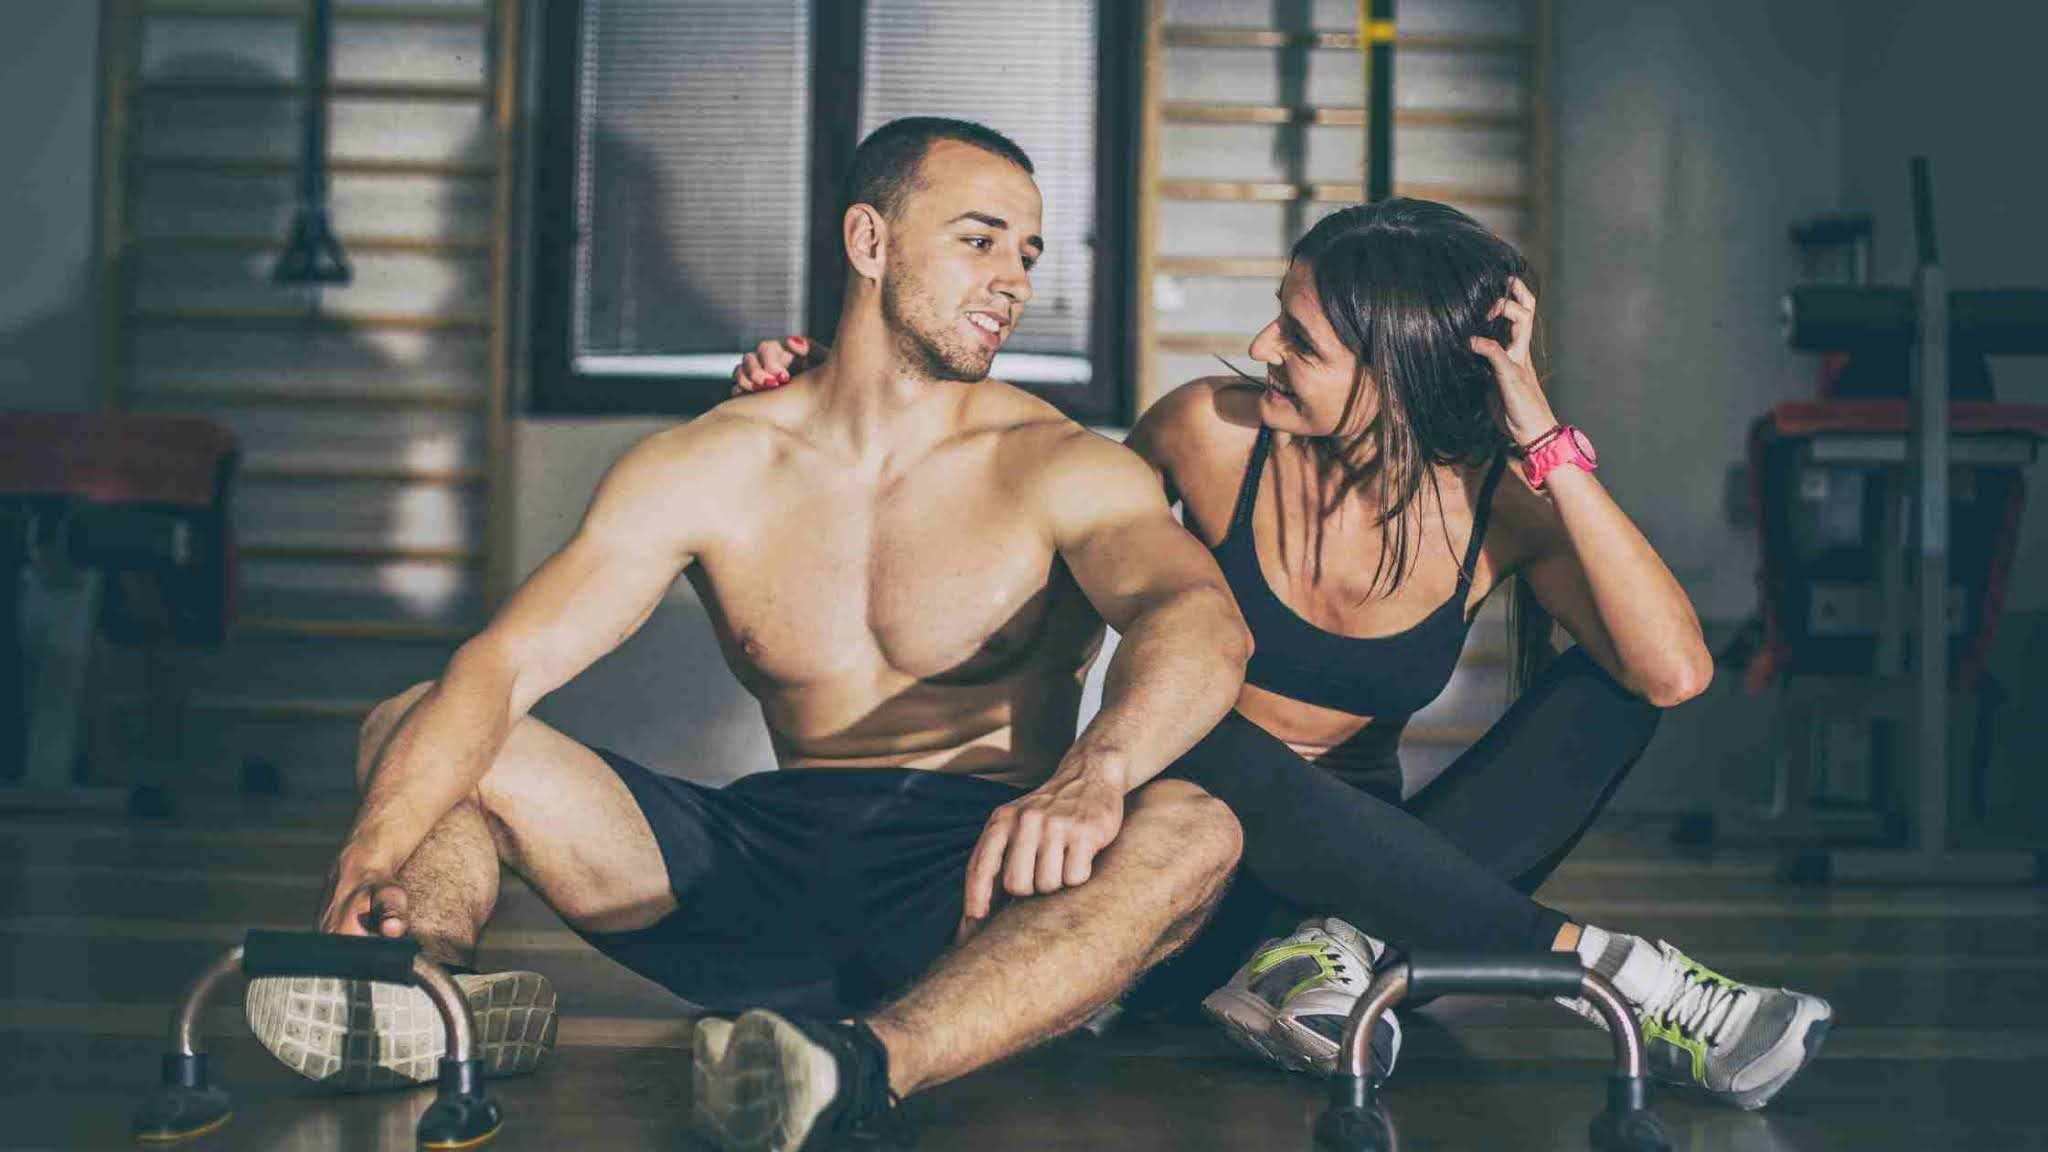 Who Is At Greater Risk Of Athletic Injury: Men Or Women?